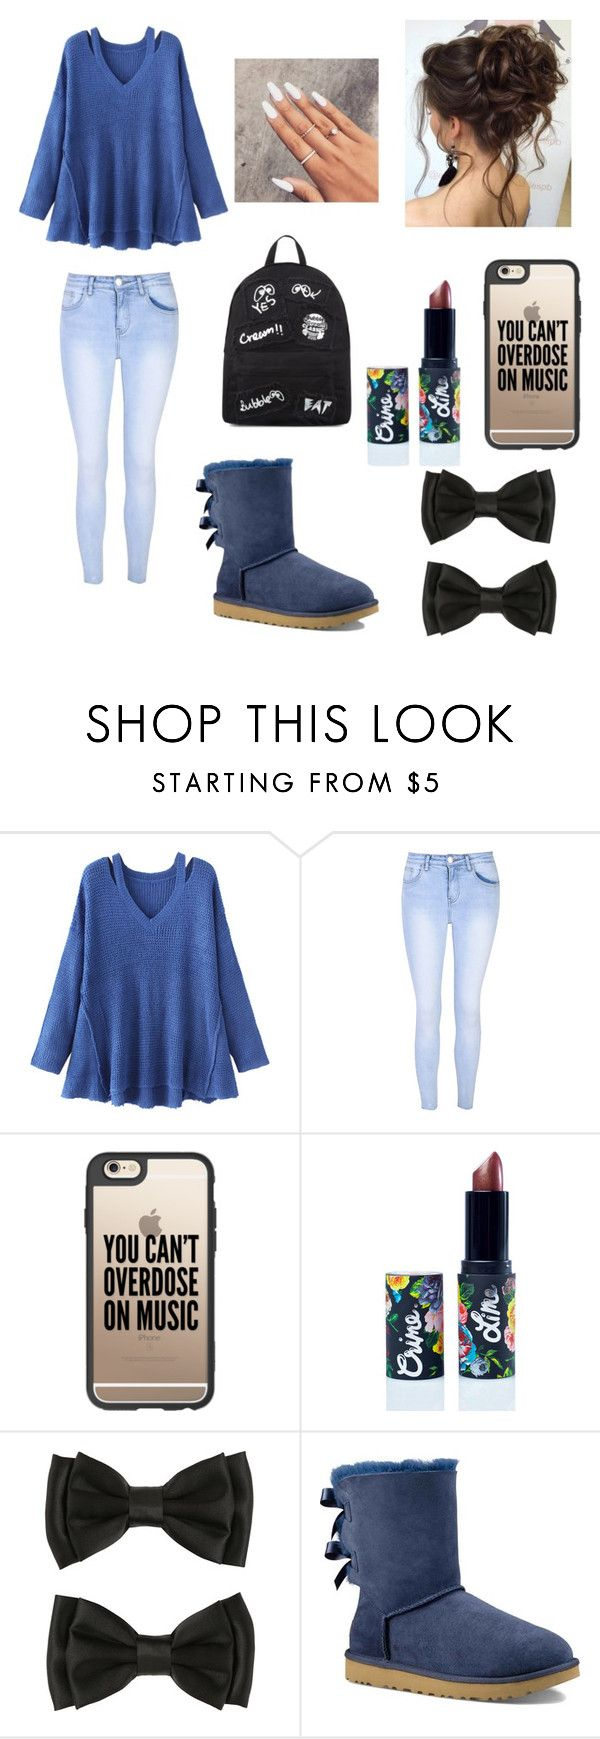 """""""💙🍂💙"""" by nevaehtillmn ❤ liked on Polyvore featuring WithChic, Glamorous, Casetify, Lime Crime, UGG Australia and Mini Cream"""